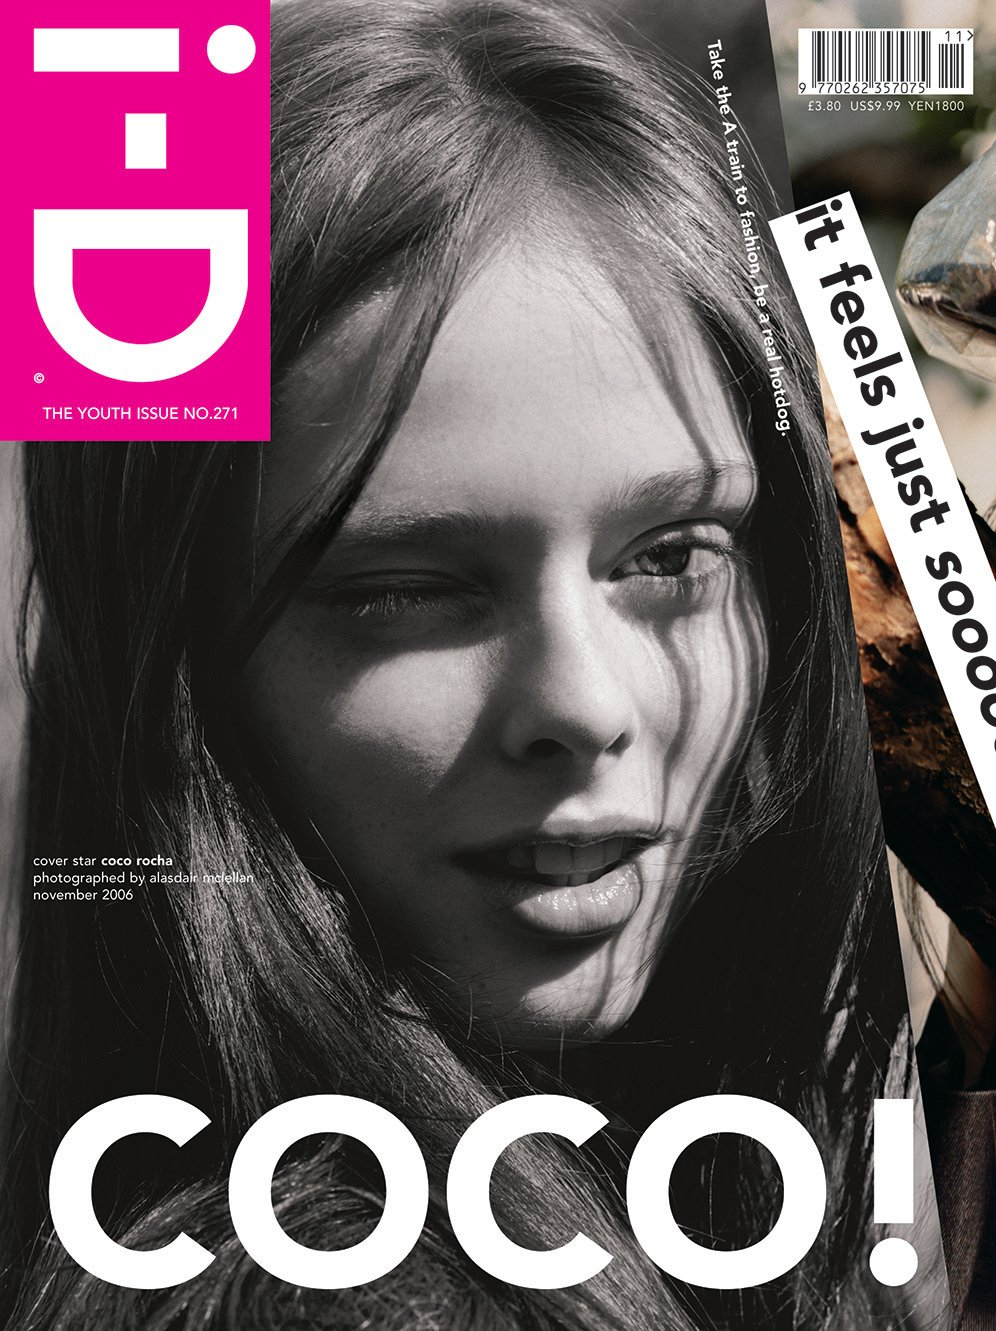 Youth Magazine Layout on Behance | Magazine layout, Magazine ... | 1331x996